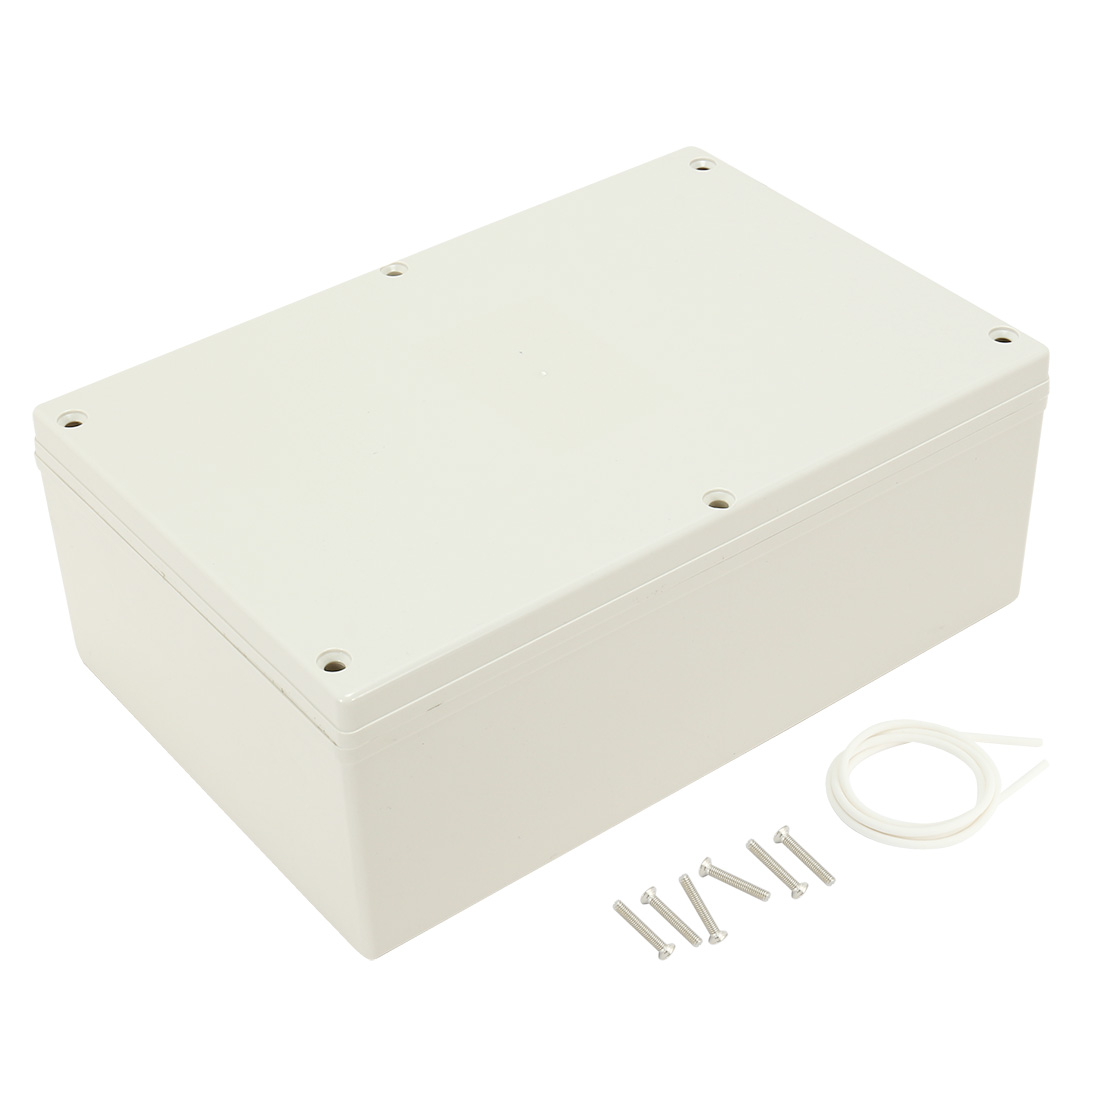 "9.5""x6.3""x3.54""(240mmx160mmx90mm) ABS Junction Box Universal Electric Project Enclosure"